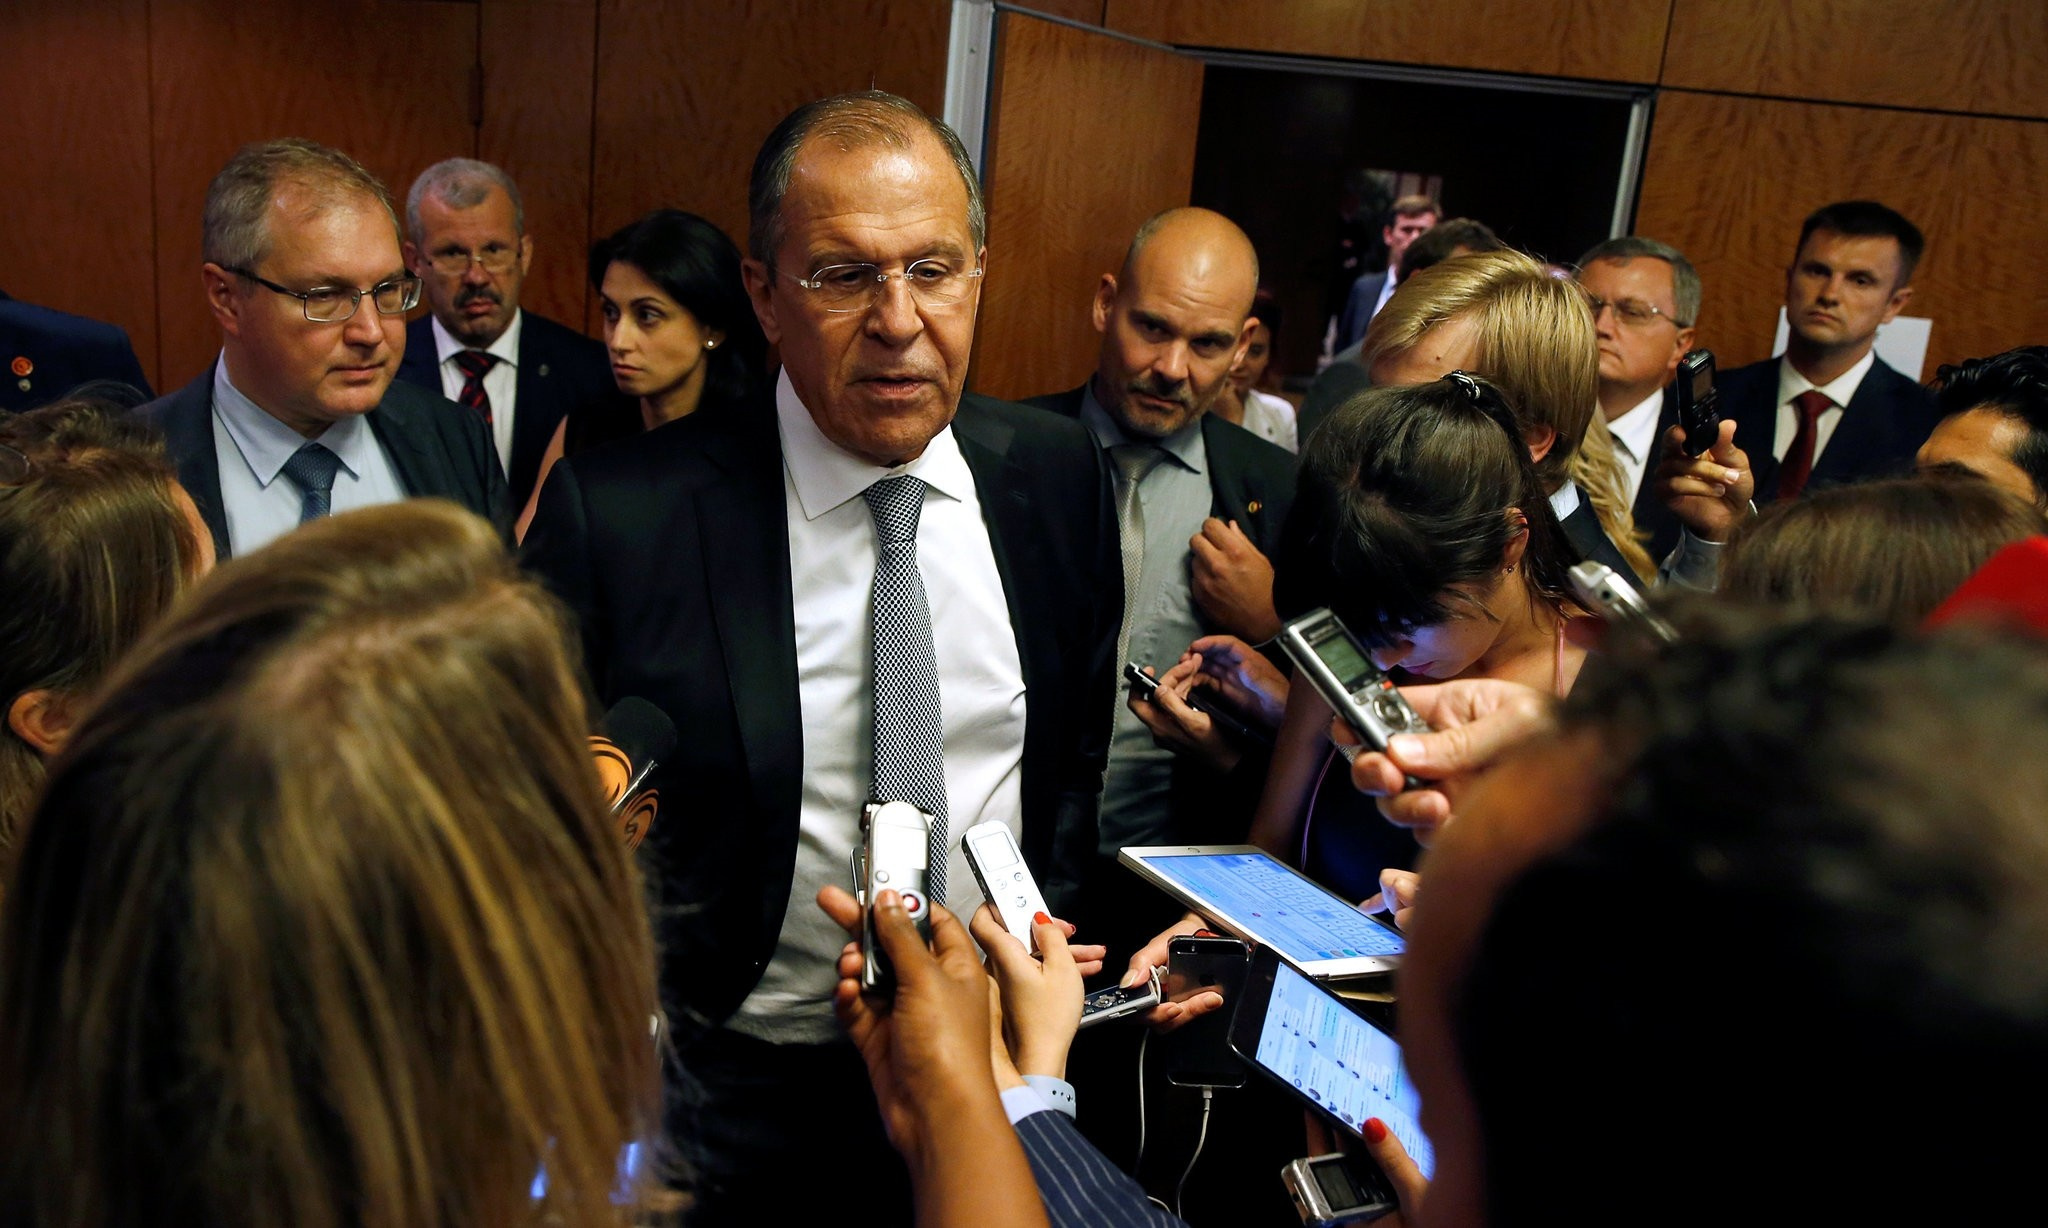 Russian Foreign Minister Sergei Lavrov speaks to reporters during a break in his meeting with U.S. Secretary of State John Kerry in Geneva, Switzerland . (Reuters Photo)